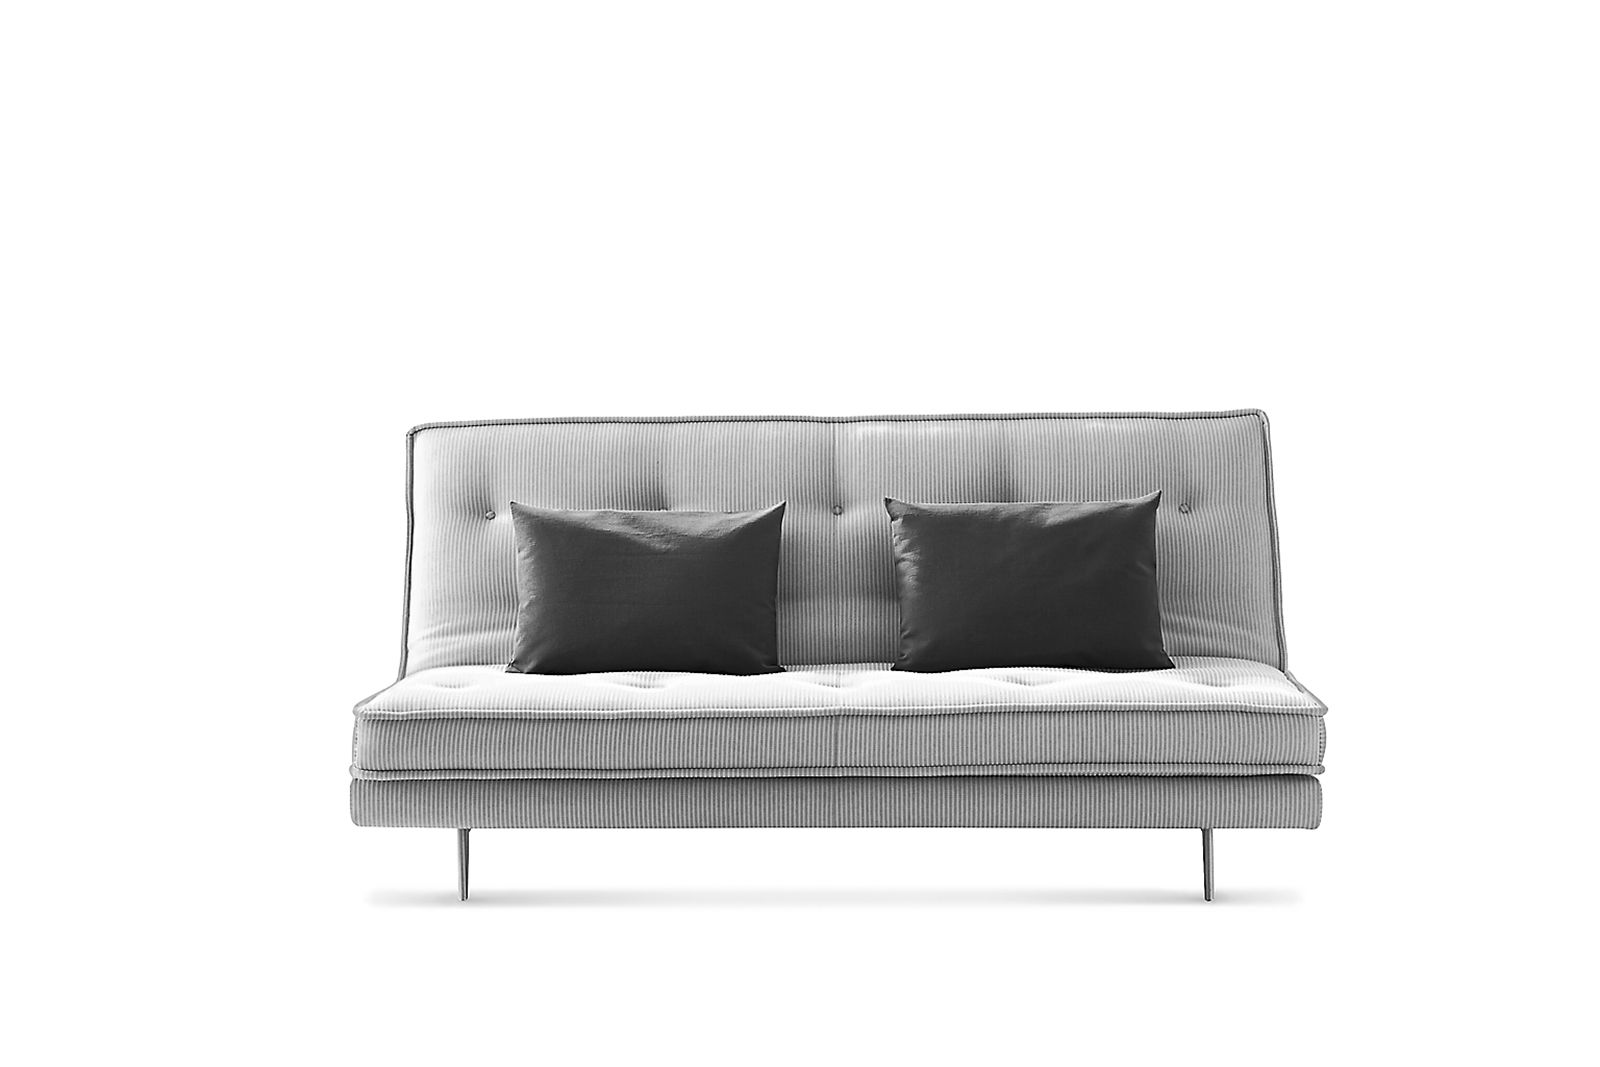 Nomade Express Designed By Dir Gomez This Everyday Sofa Bed Domohas An Understated Elegance Reminiscent Of The Stylish 1930s Well Proportioned